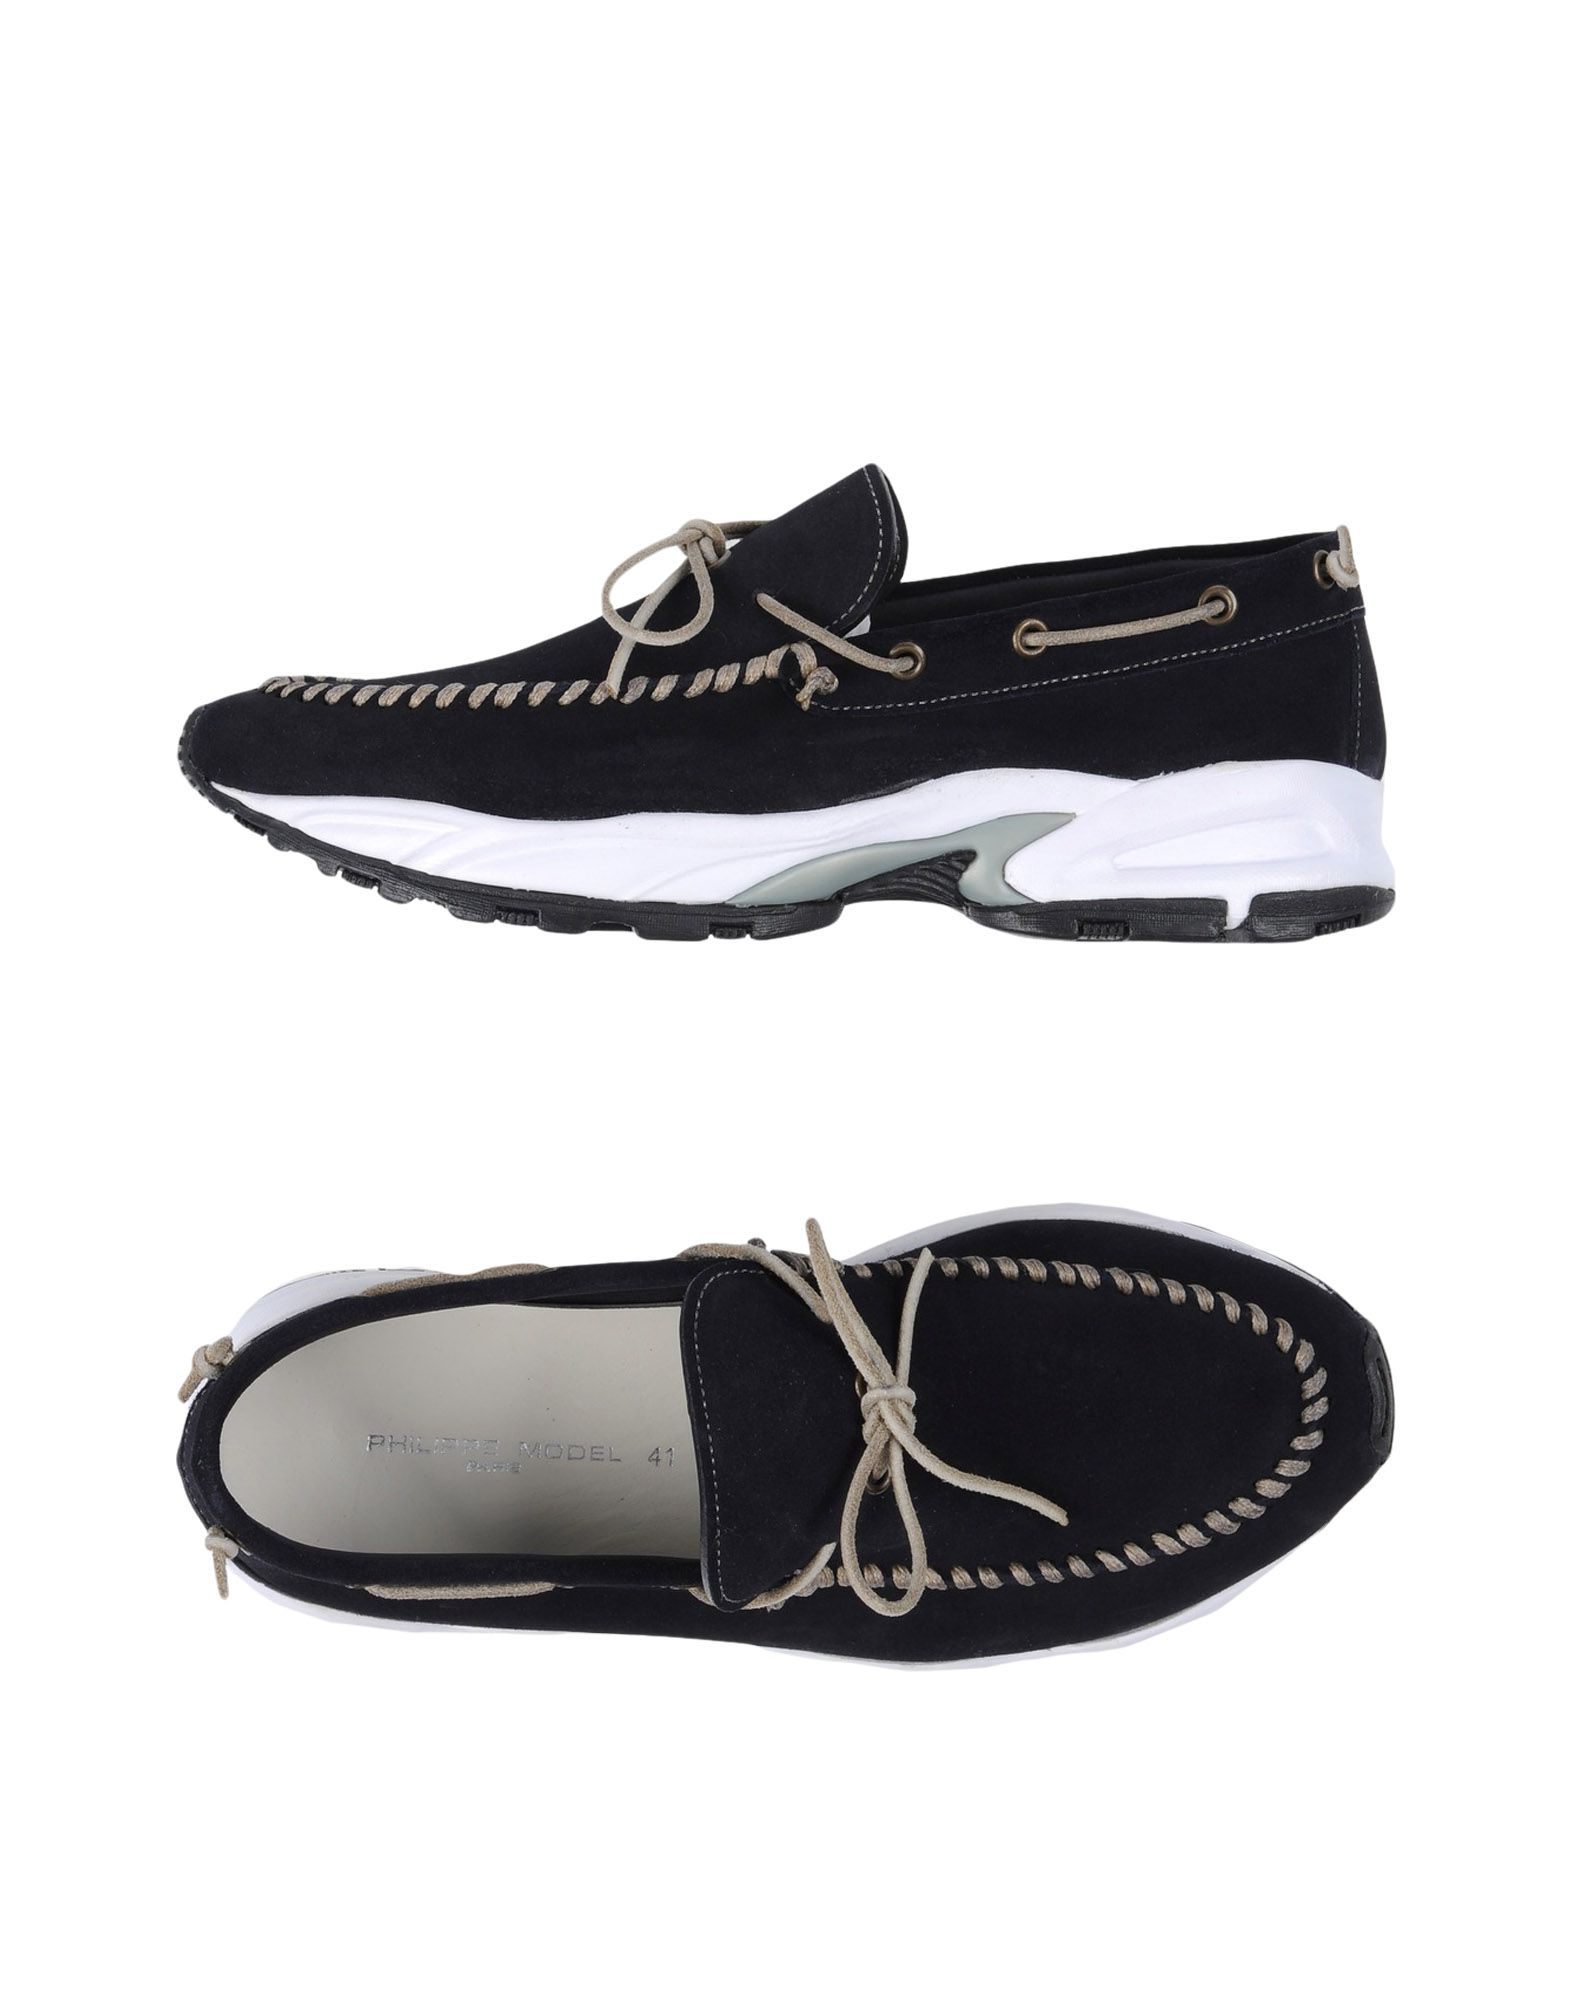 'PHILIPPE MODEL Loafers